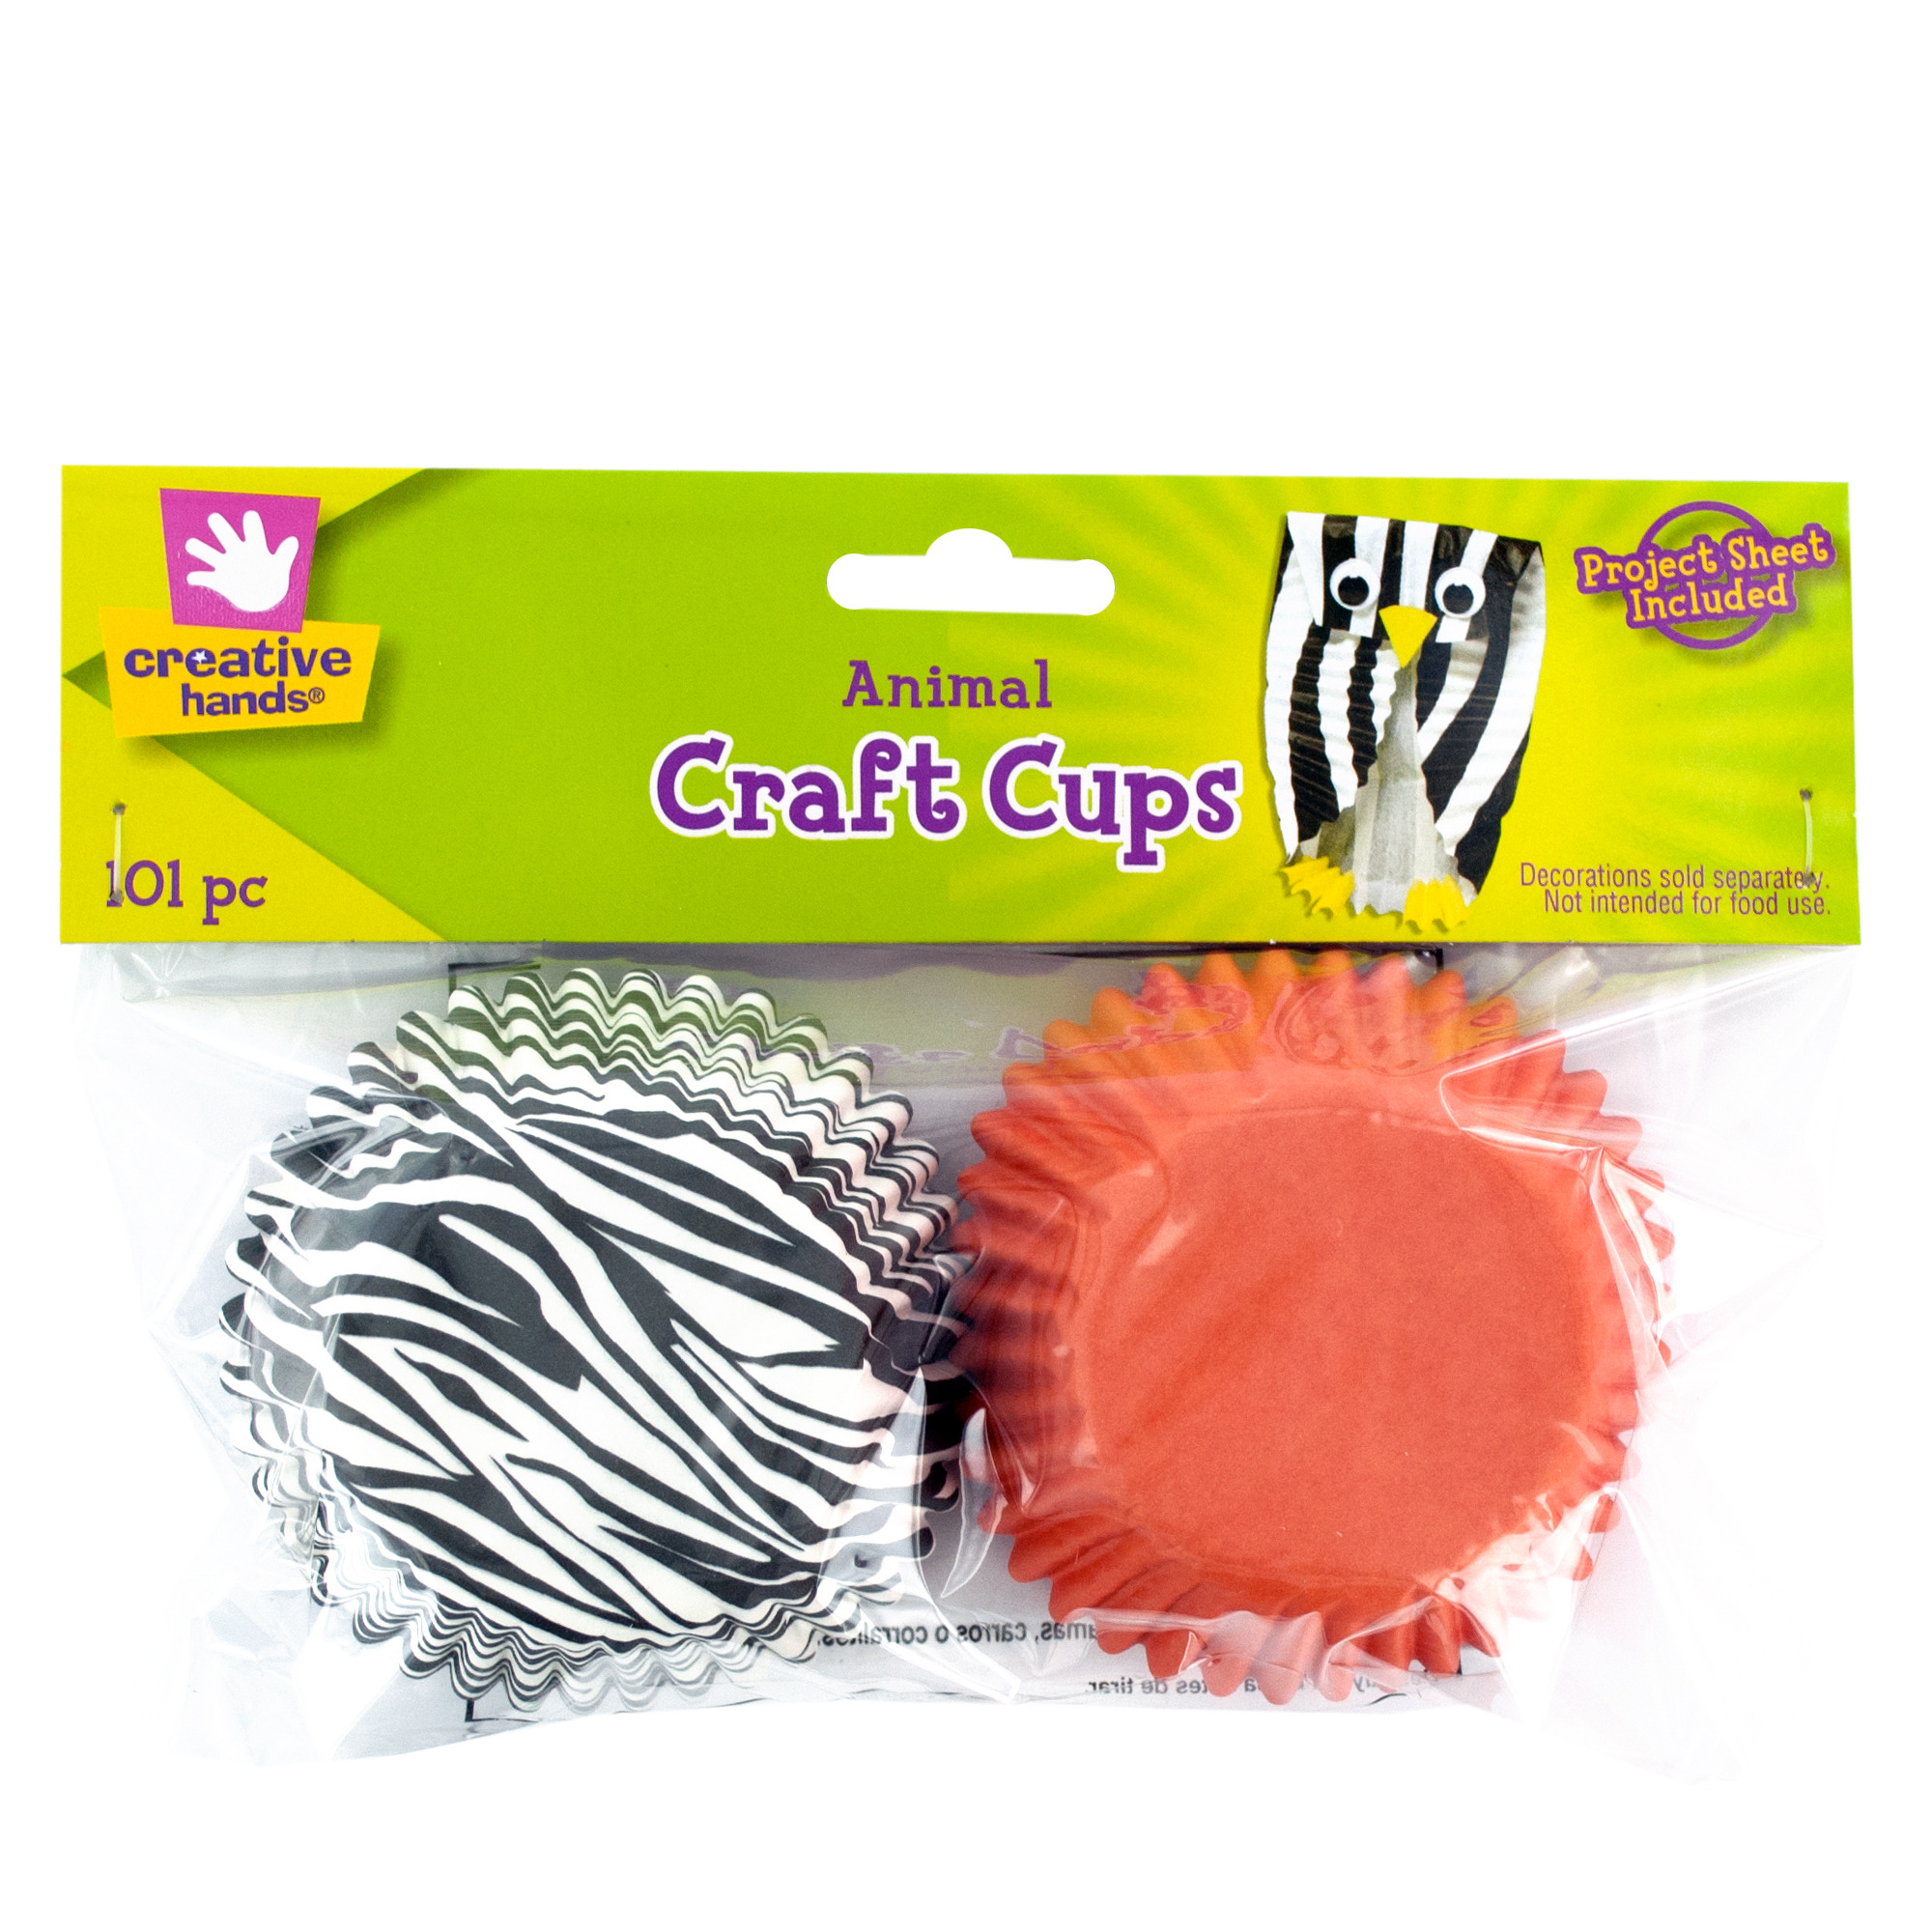 cheap paper cups Paper cups found in: home store designer paper cups, 3 oz, 36-ct packs, sky blue party supplies, the home store foam beverage cups, 16 oz, 20-ct packs, white paper party cups, 9-oz, 12-ct packs, yellow paper party cups, 9-oz.